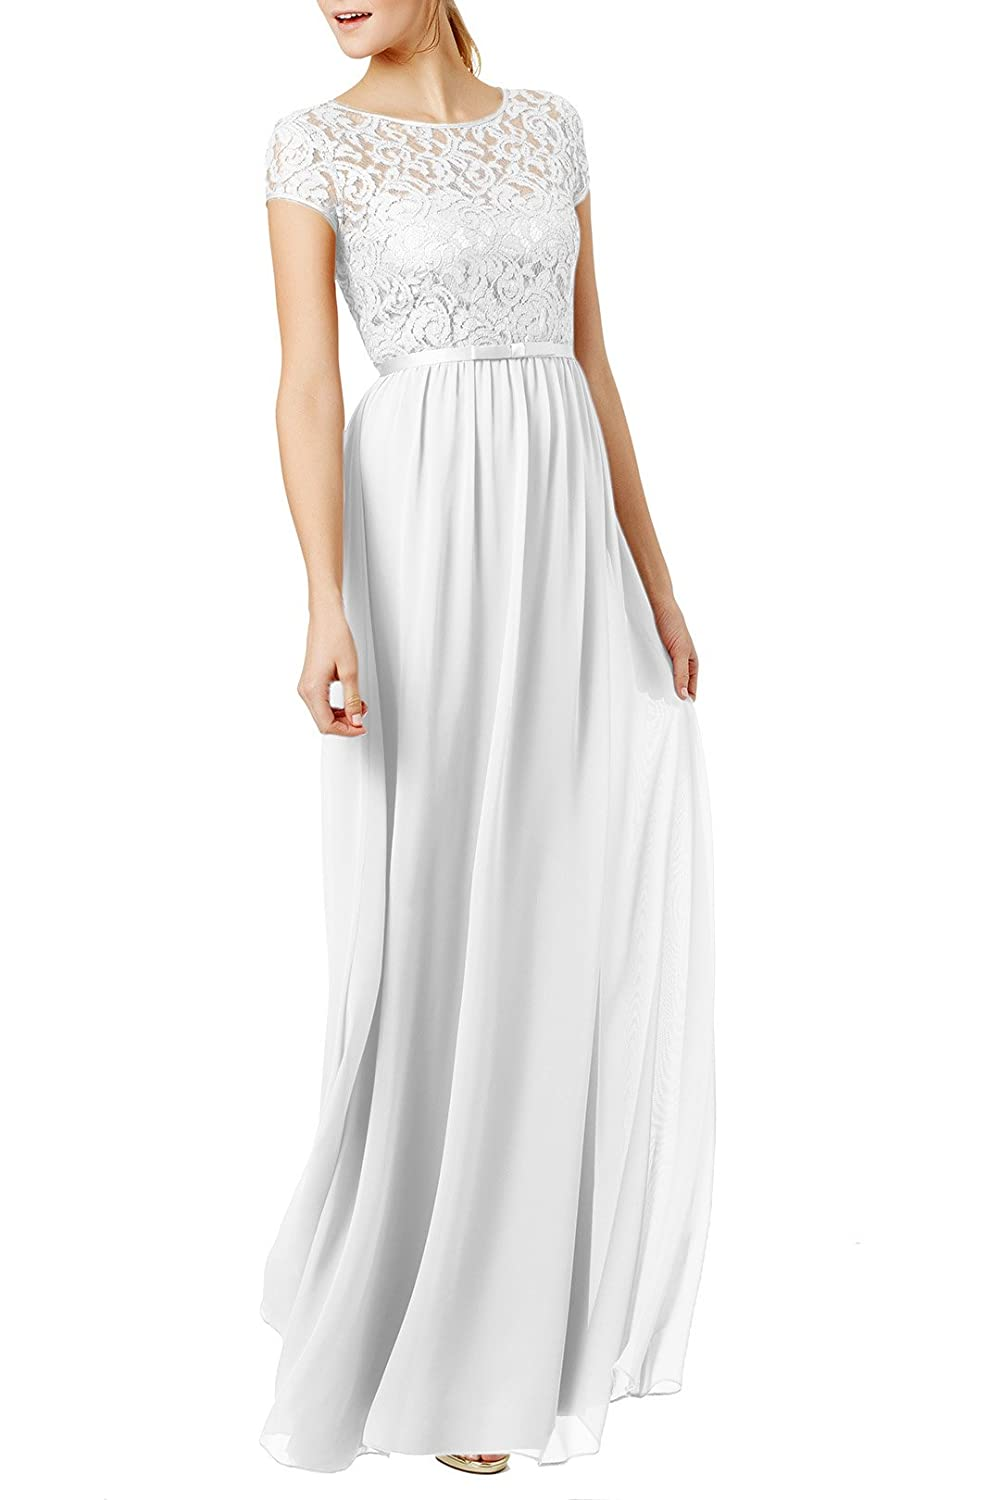 be50c49586da Amazon.com: REPHYLLIS Women's Lace Cap Sleeve Evening Party Maxi Wedding  Dress: Clothing